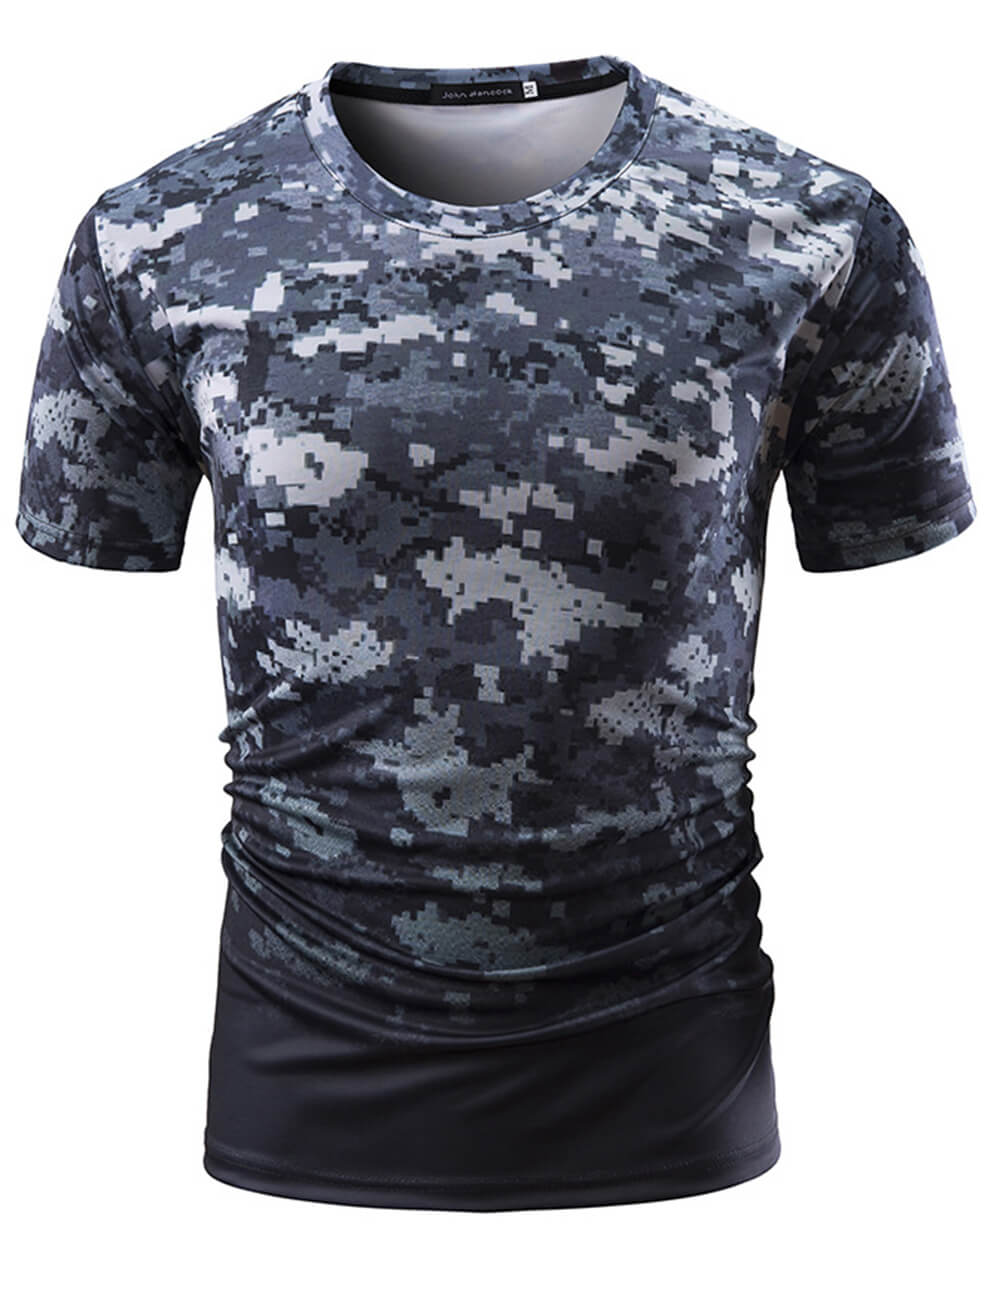 Men's Dry-Fit Crew Neck Camouflage Short Sleeve Moisture Wicking Soft Comfy Active T-Shirt